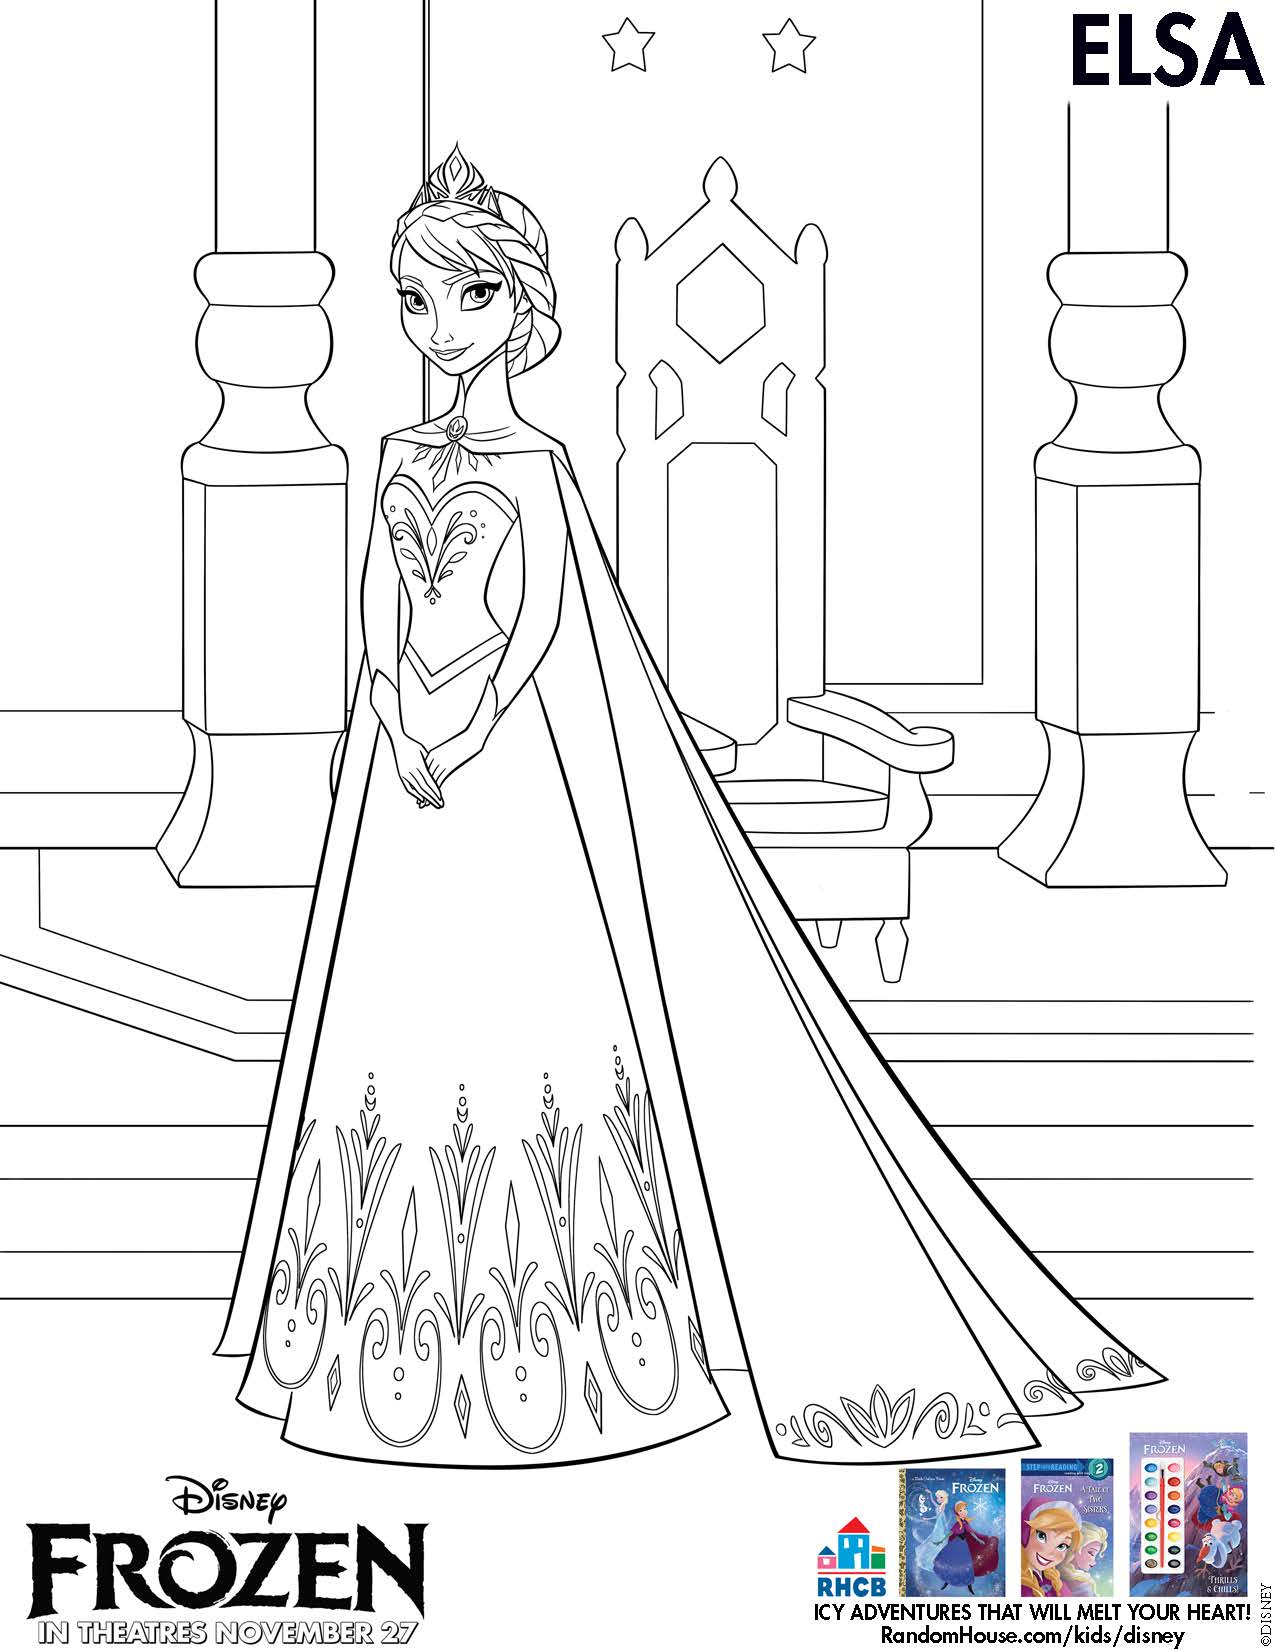 Disney\'s FROZEN Movie Printable Coloring Pages and Activity Sheets!